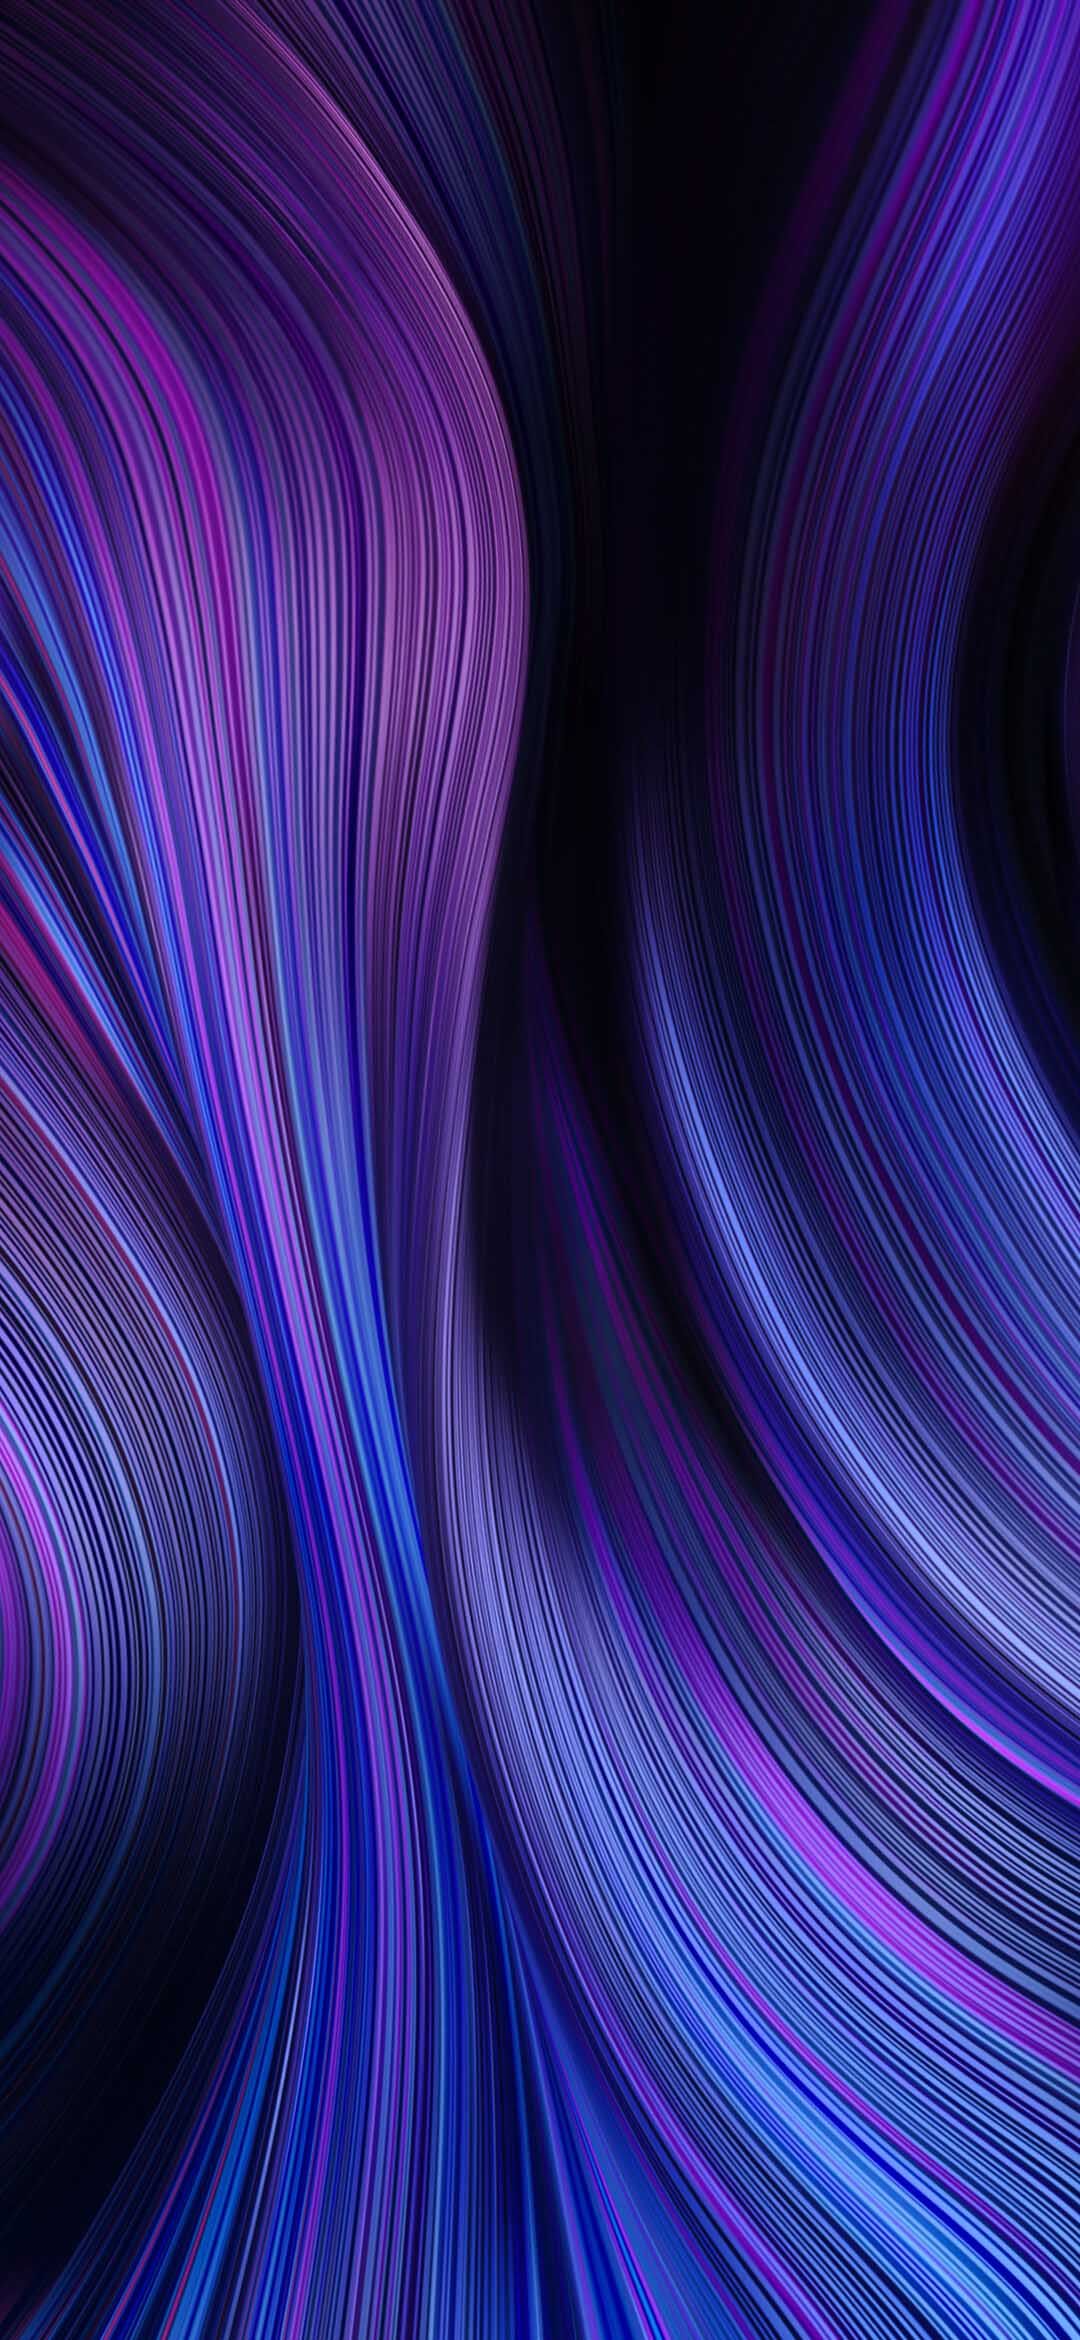 Xiaomi Mi 8 Wallpapers Top Free Xiaomi Mi 8 Backgrounds Wallpaperaccess